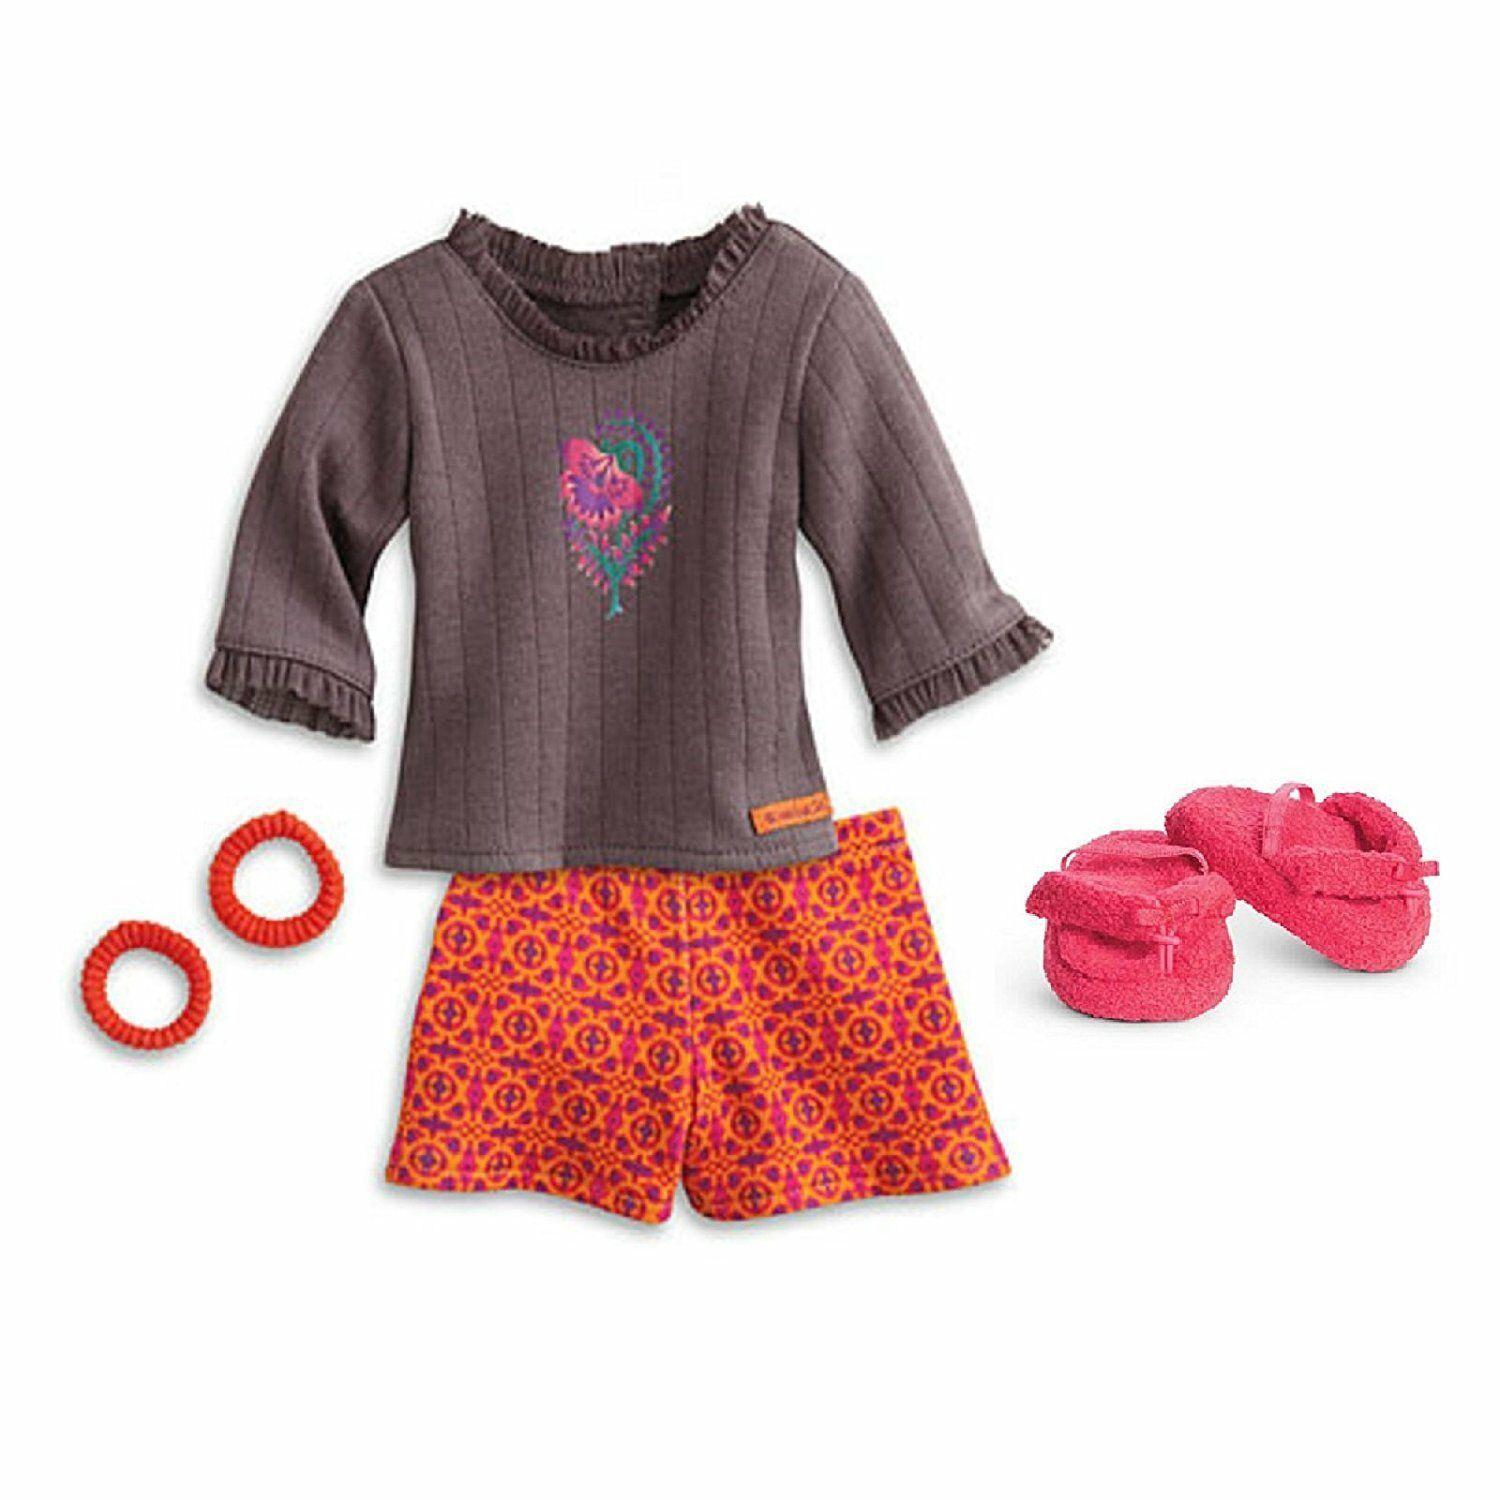 American Girl Doll Saige Pajama/'s For Doll New in Box